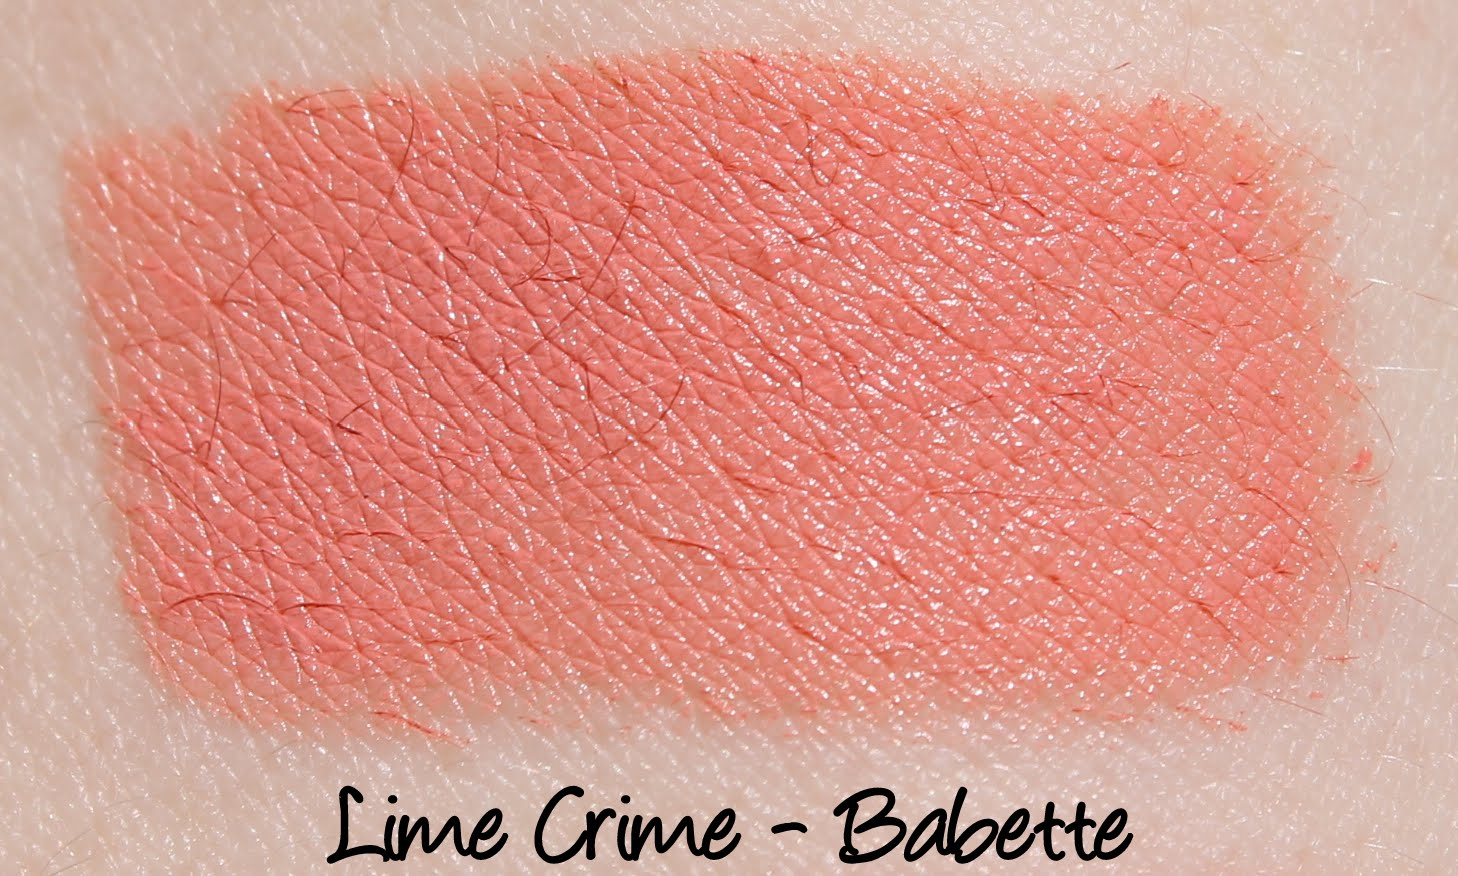 Lime Crime Babette Lipstick Swatch